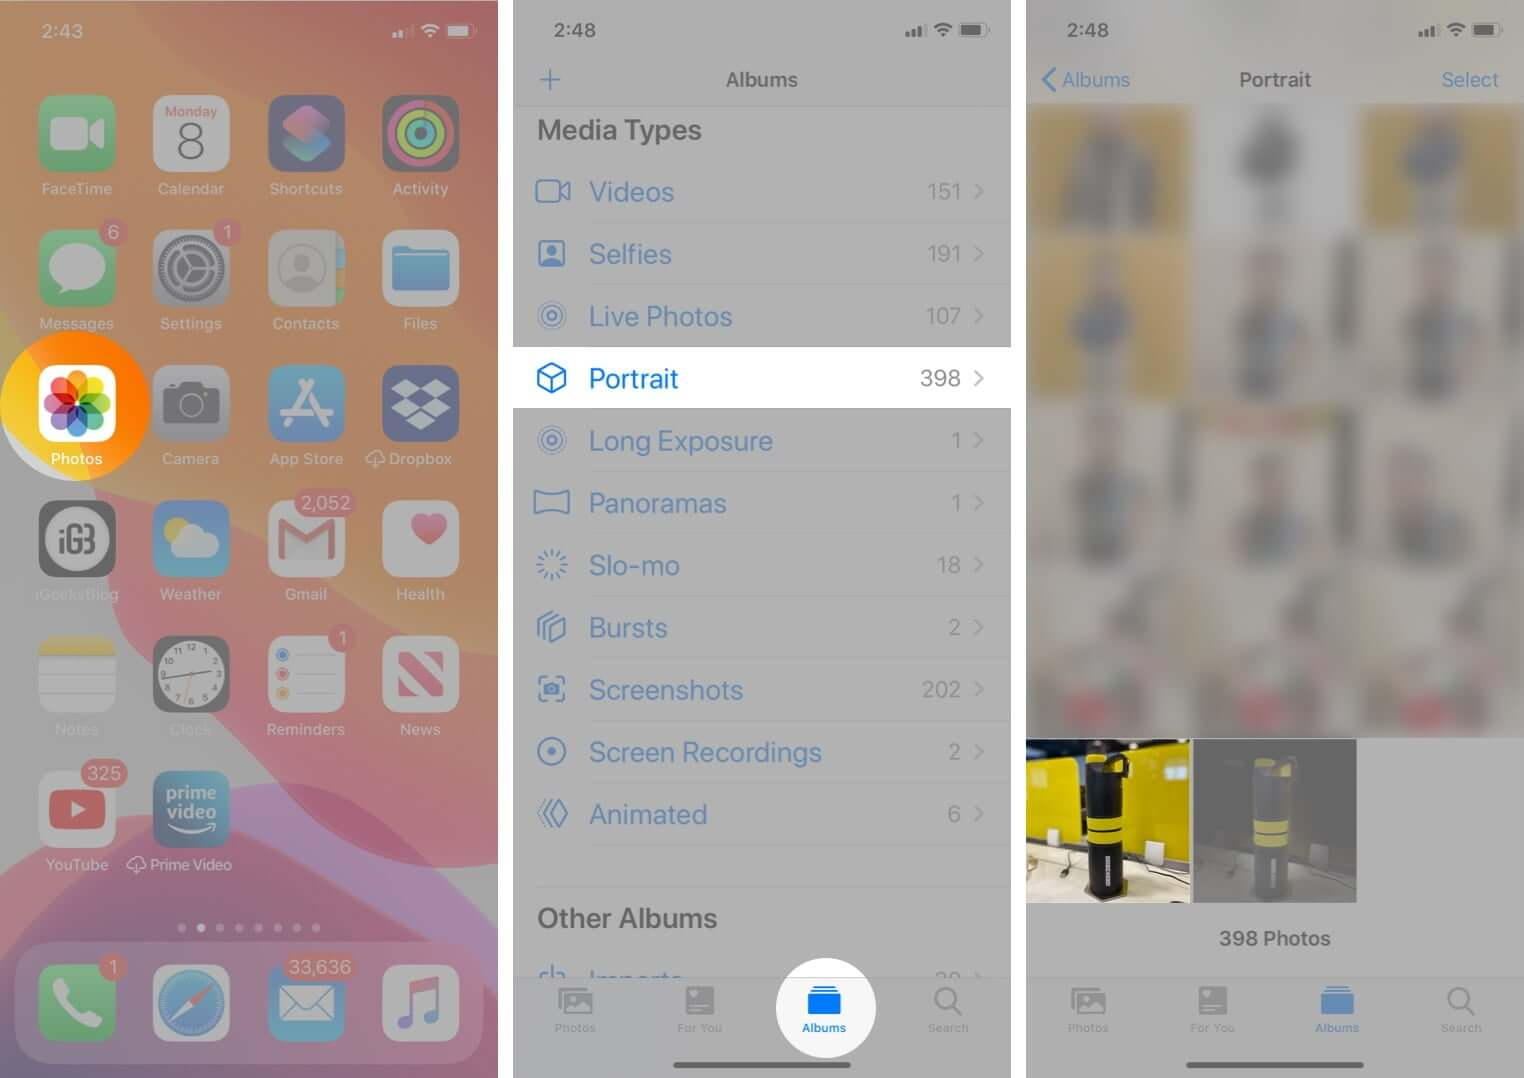 open photos app select portrait from media types and tap on photo